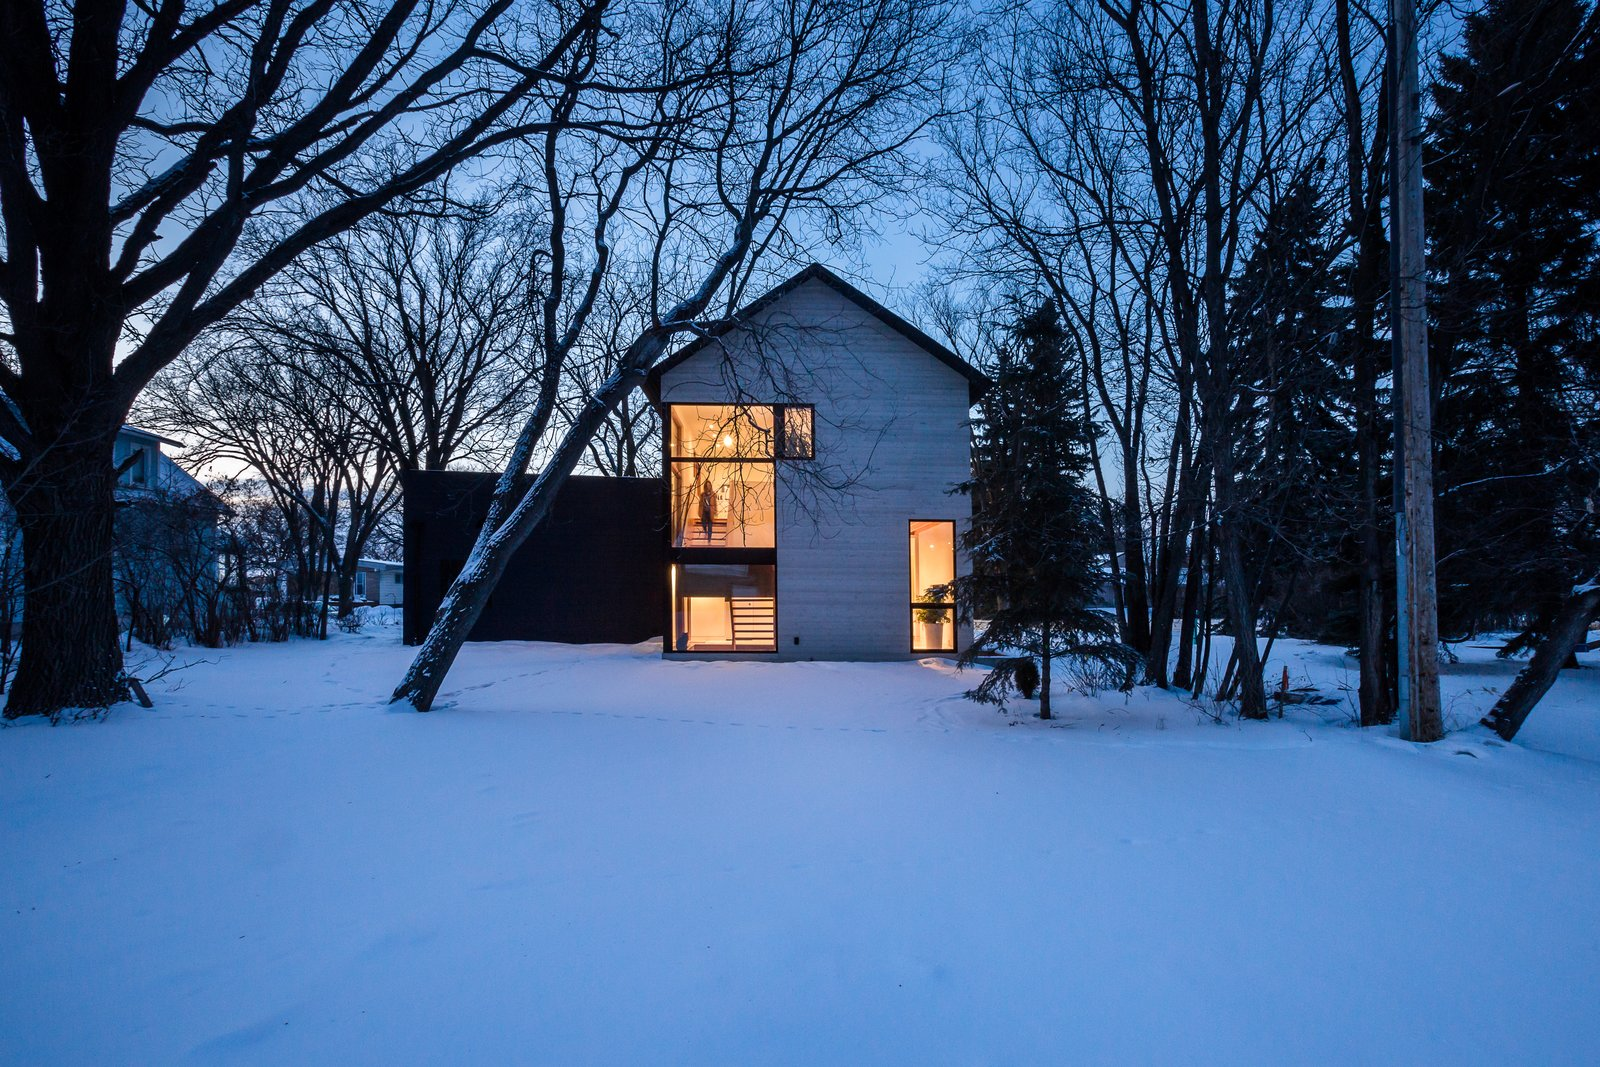 Duerksen now runs his own architecture firm out of the home.